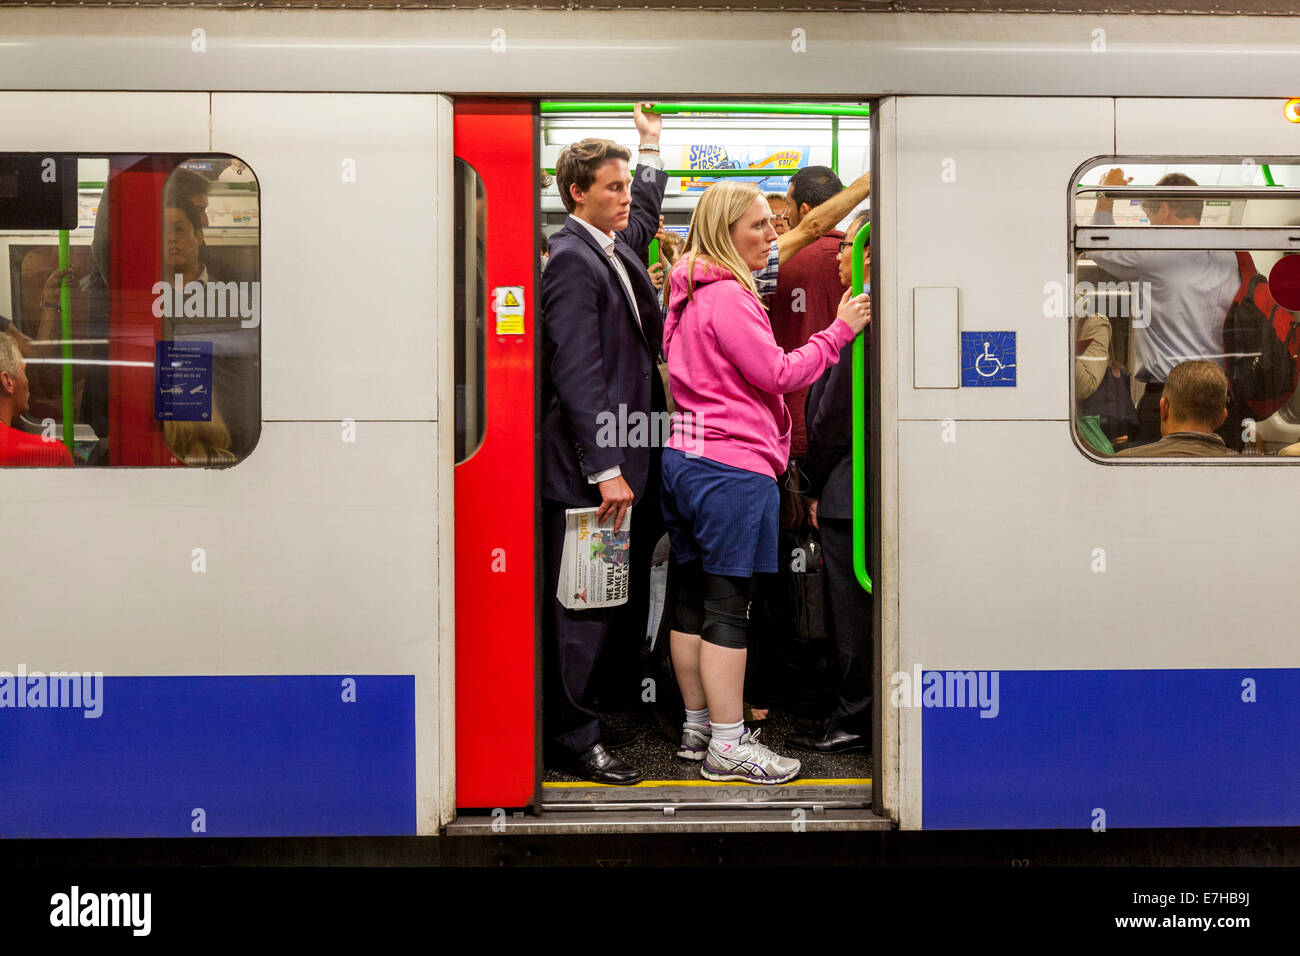 Les voyageurs à bord d'un train du métro de Londres, Westminster, Londres, Angleterre Photo Stock